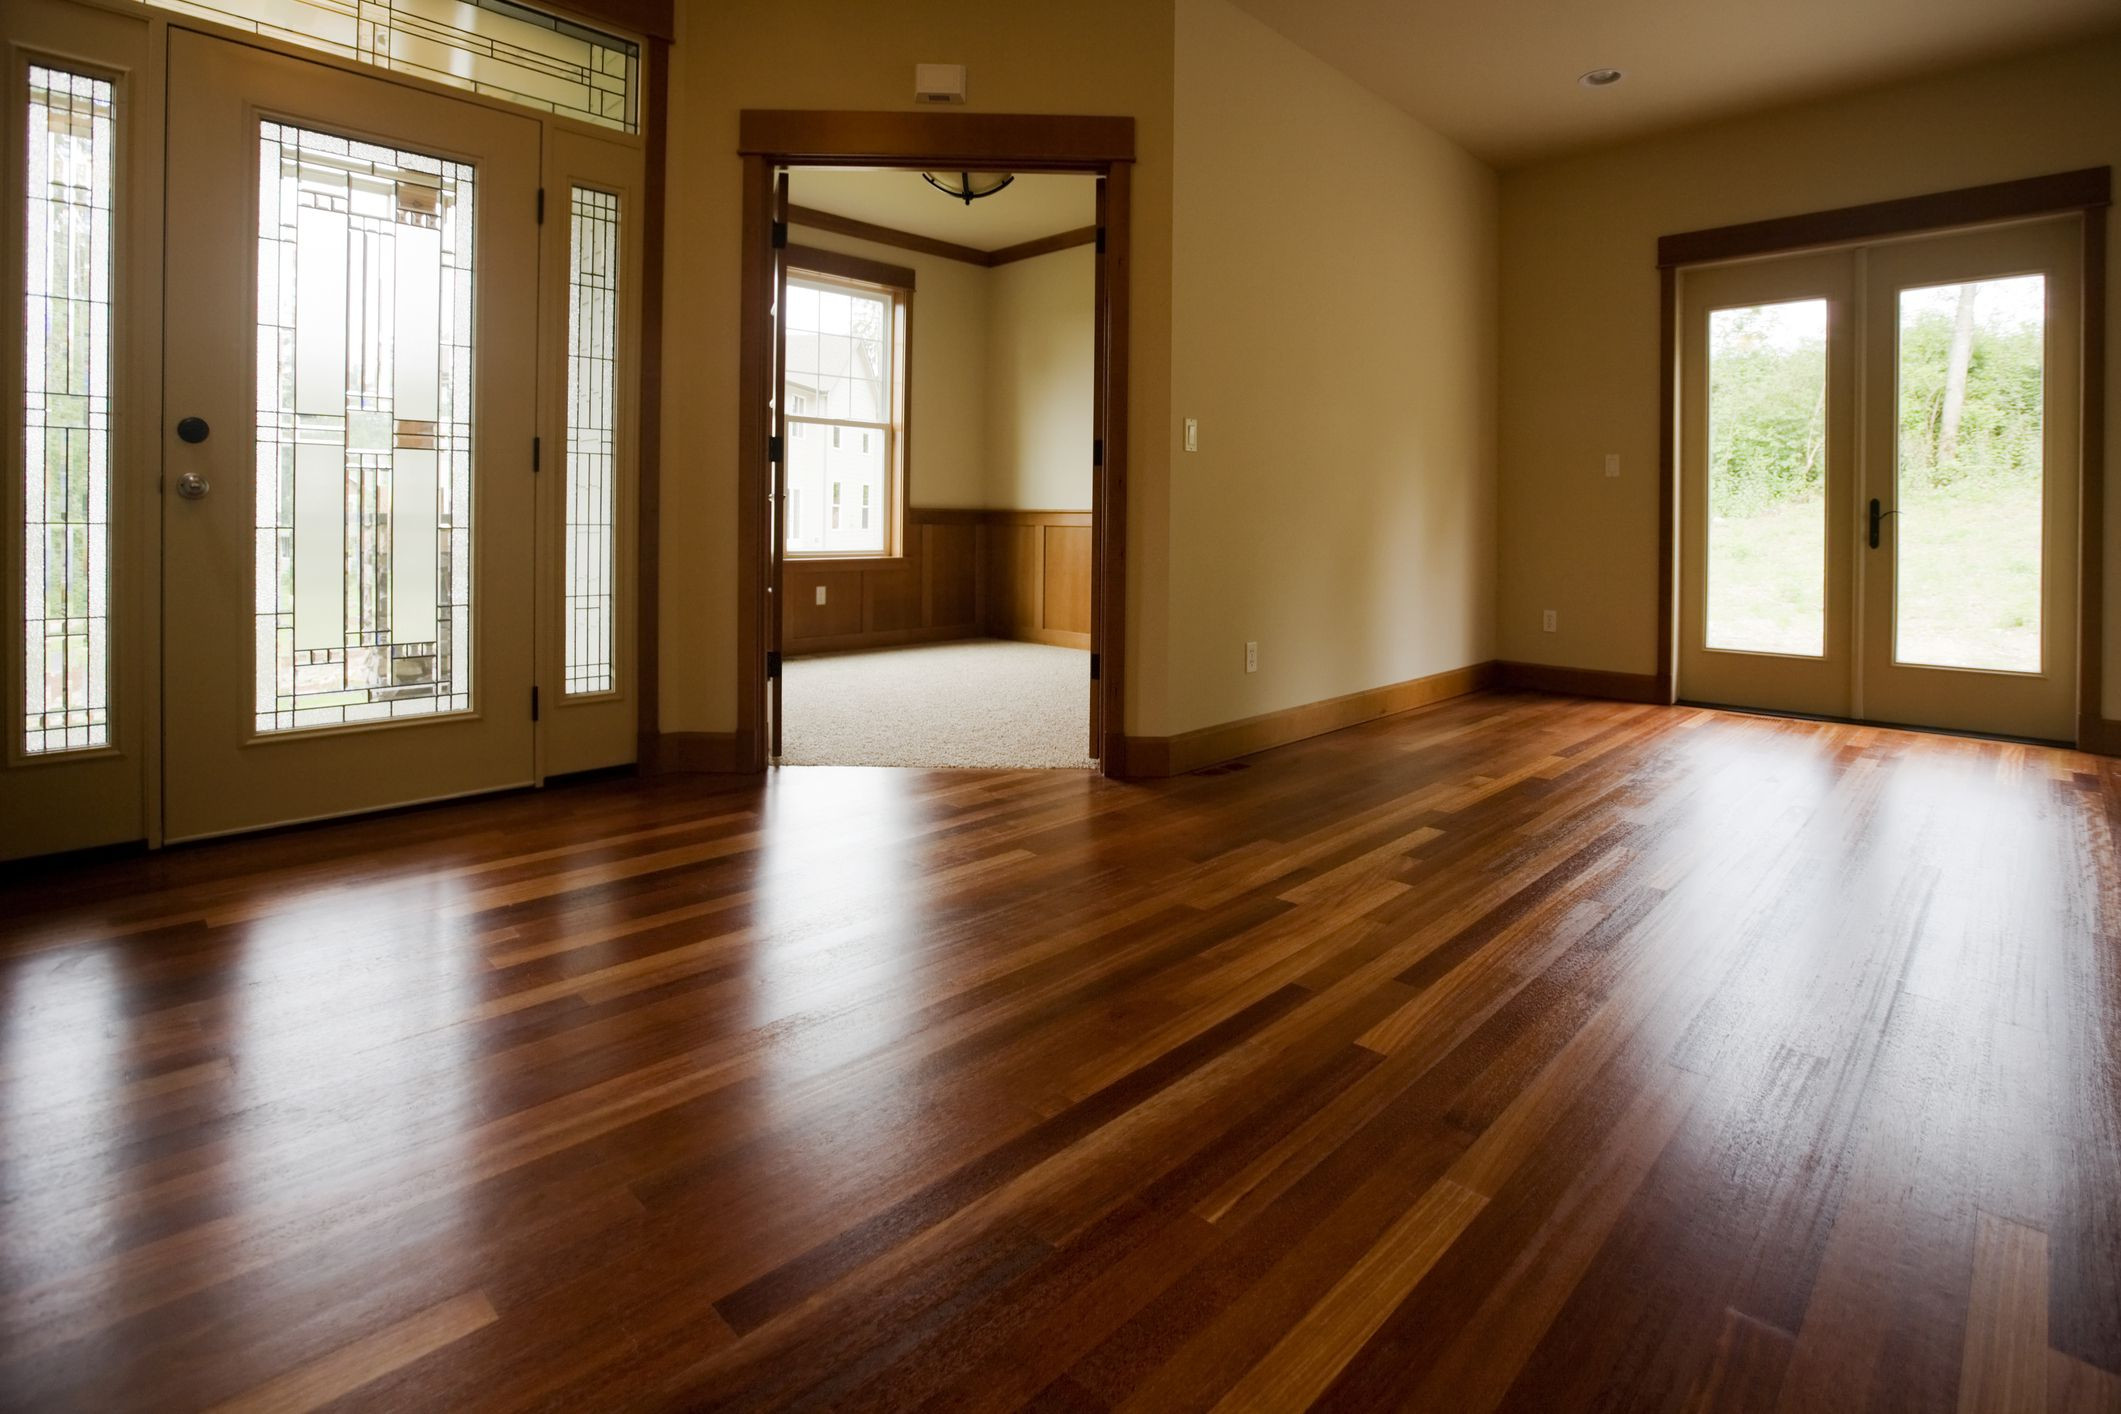 3 4 inch engineered hardwood flooring of types of hardwood flooring buyers guide intended for gettyimages 157332889 5886d8383df78c2ccd65d4e1